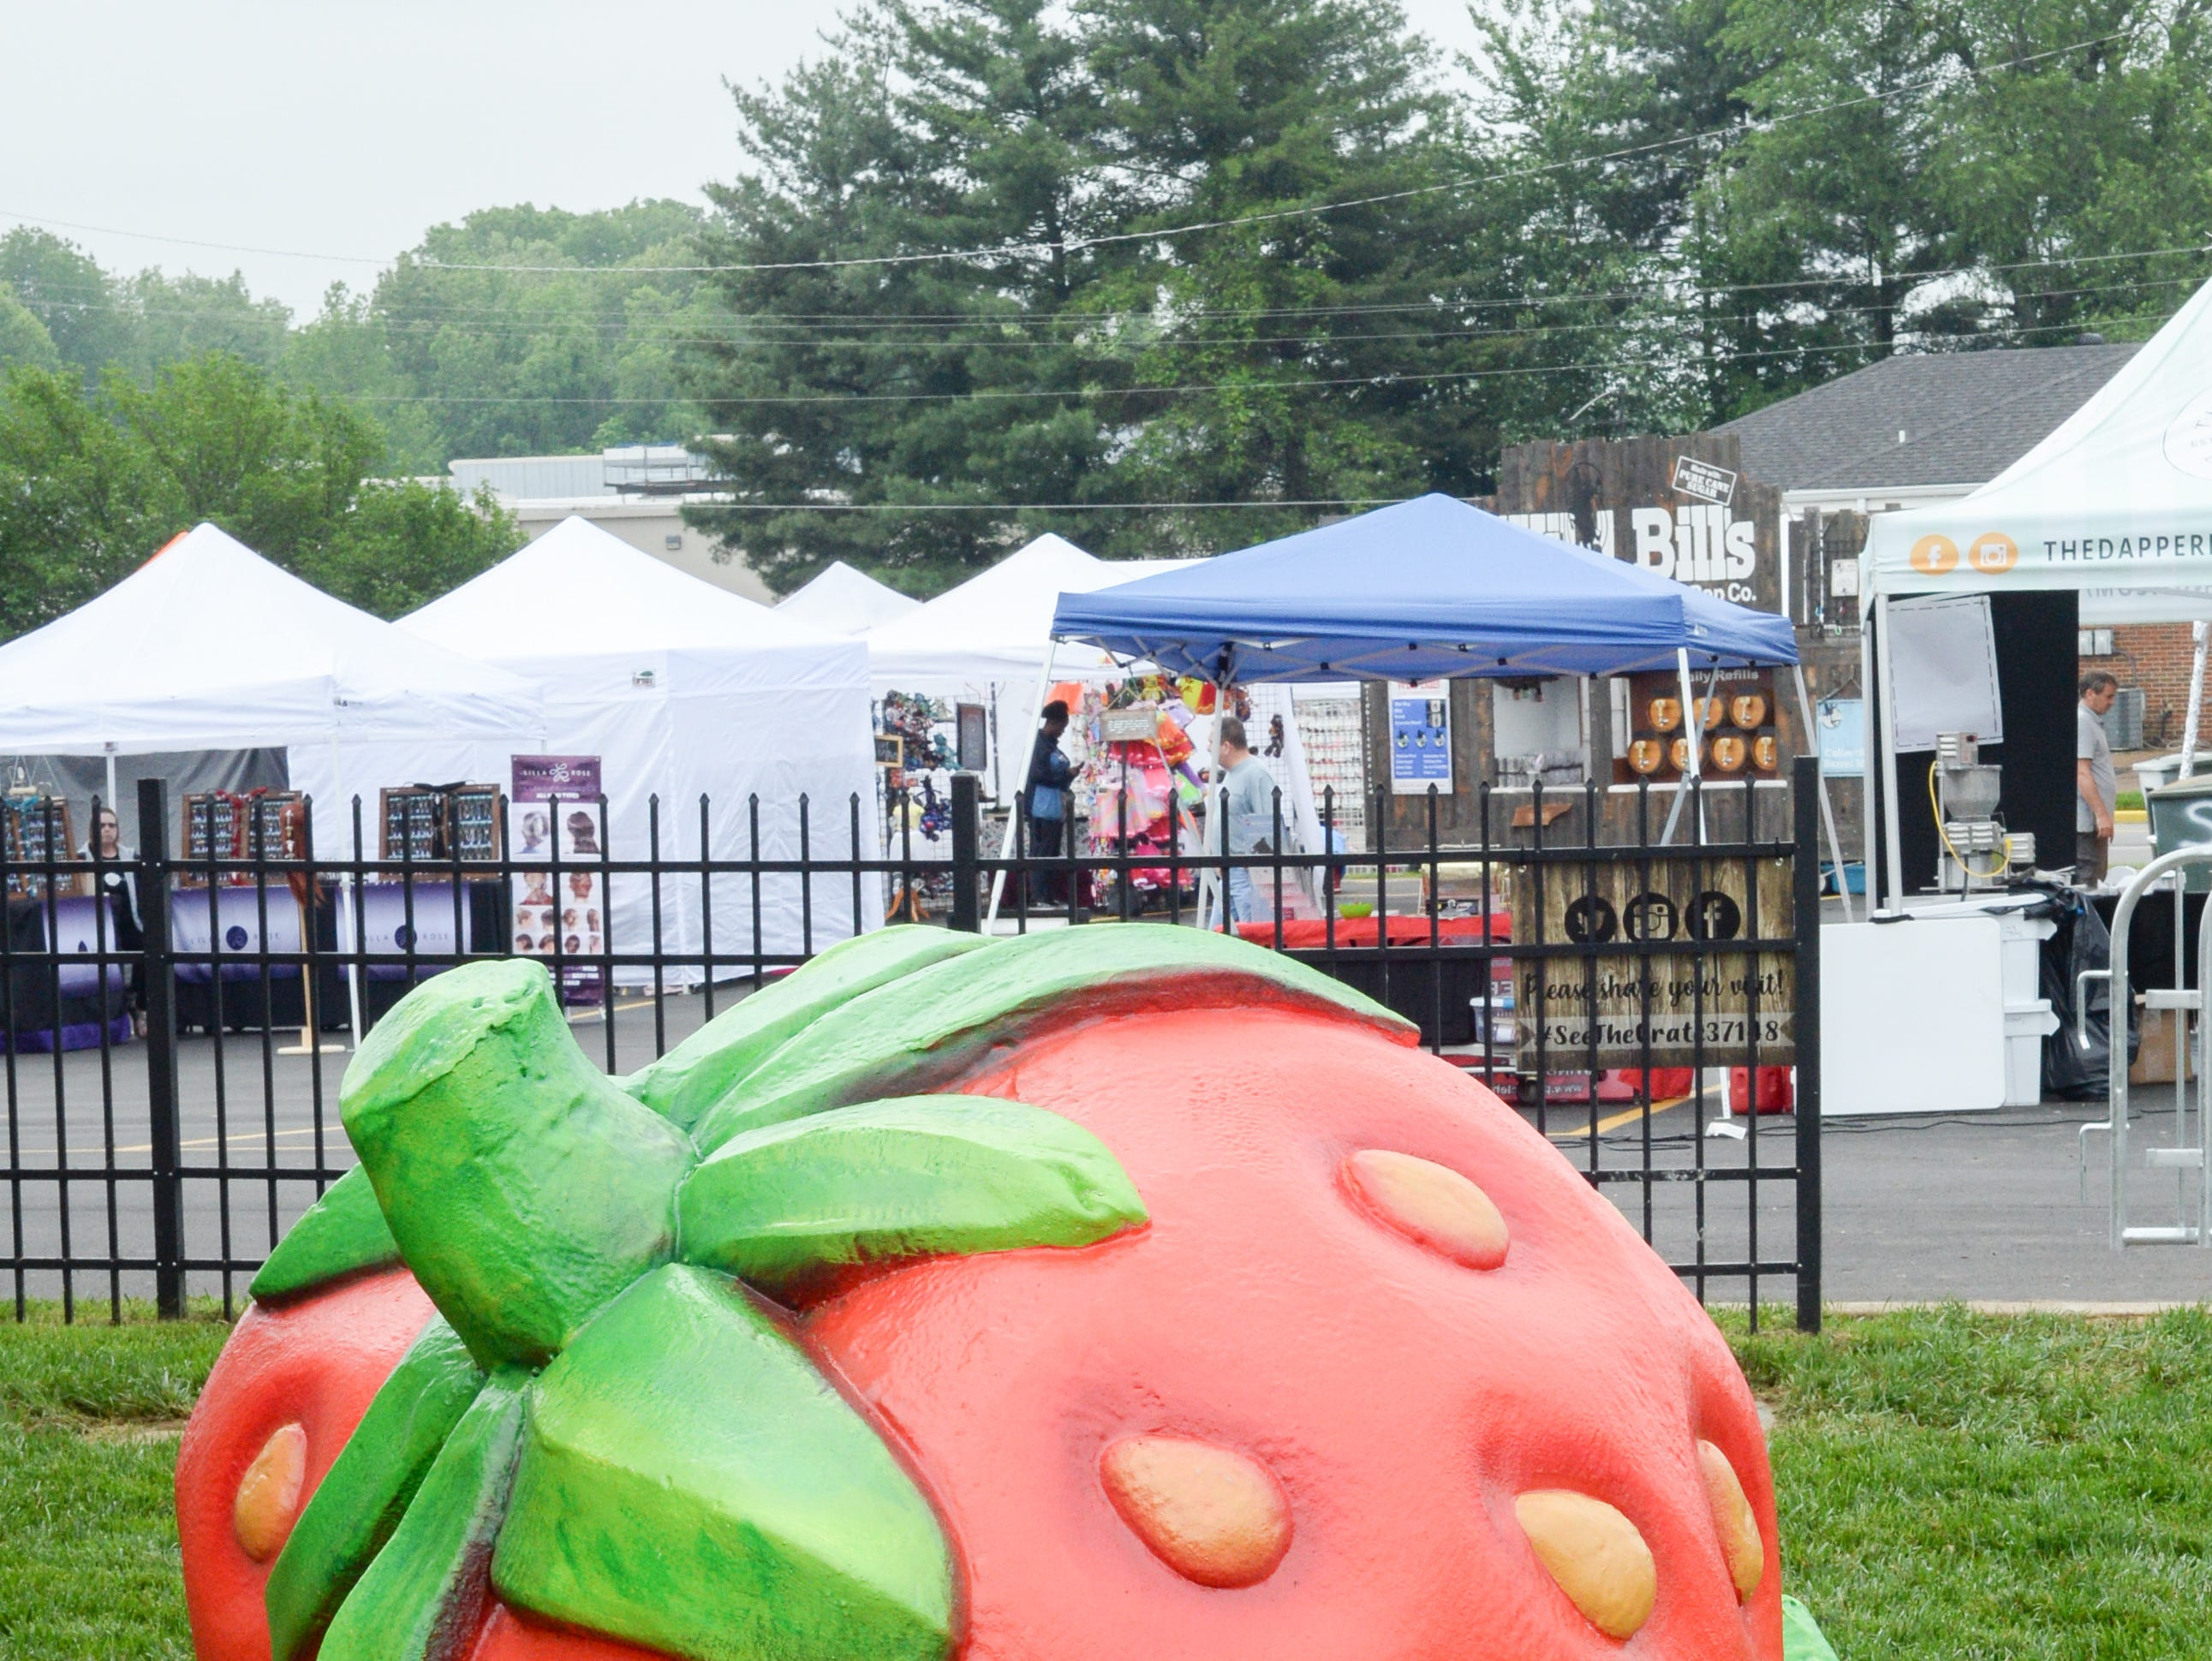 Giant strawberries enhance the landscape during the 78th Annual Middle Tennessee Strawberry Festival presented by the Portland Chamber of Commerce in Portland on Saturday, May 11.